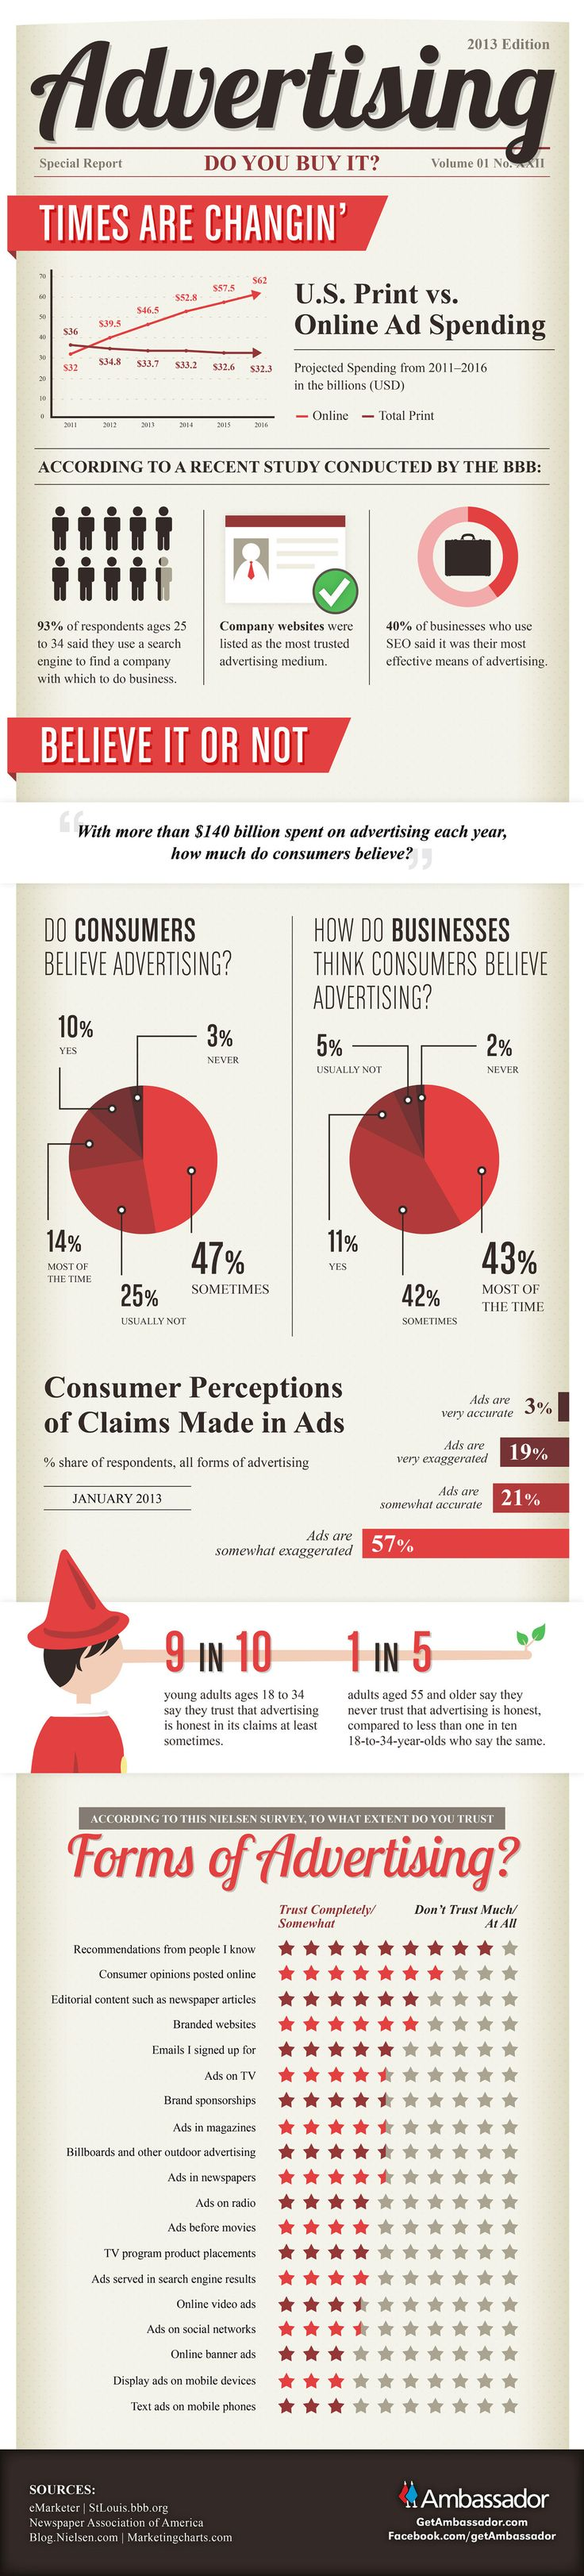 Advertising can be one of the biggest challenges a brand faces. This infographic by Ambassador helps shed light on how public perception of advertising is changing, and what ad formats your brand should focus on for the future.